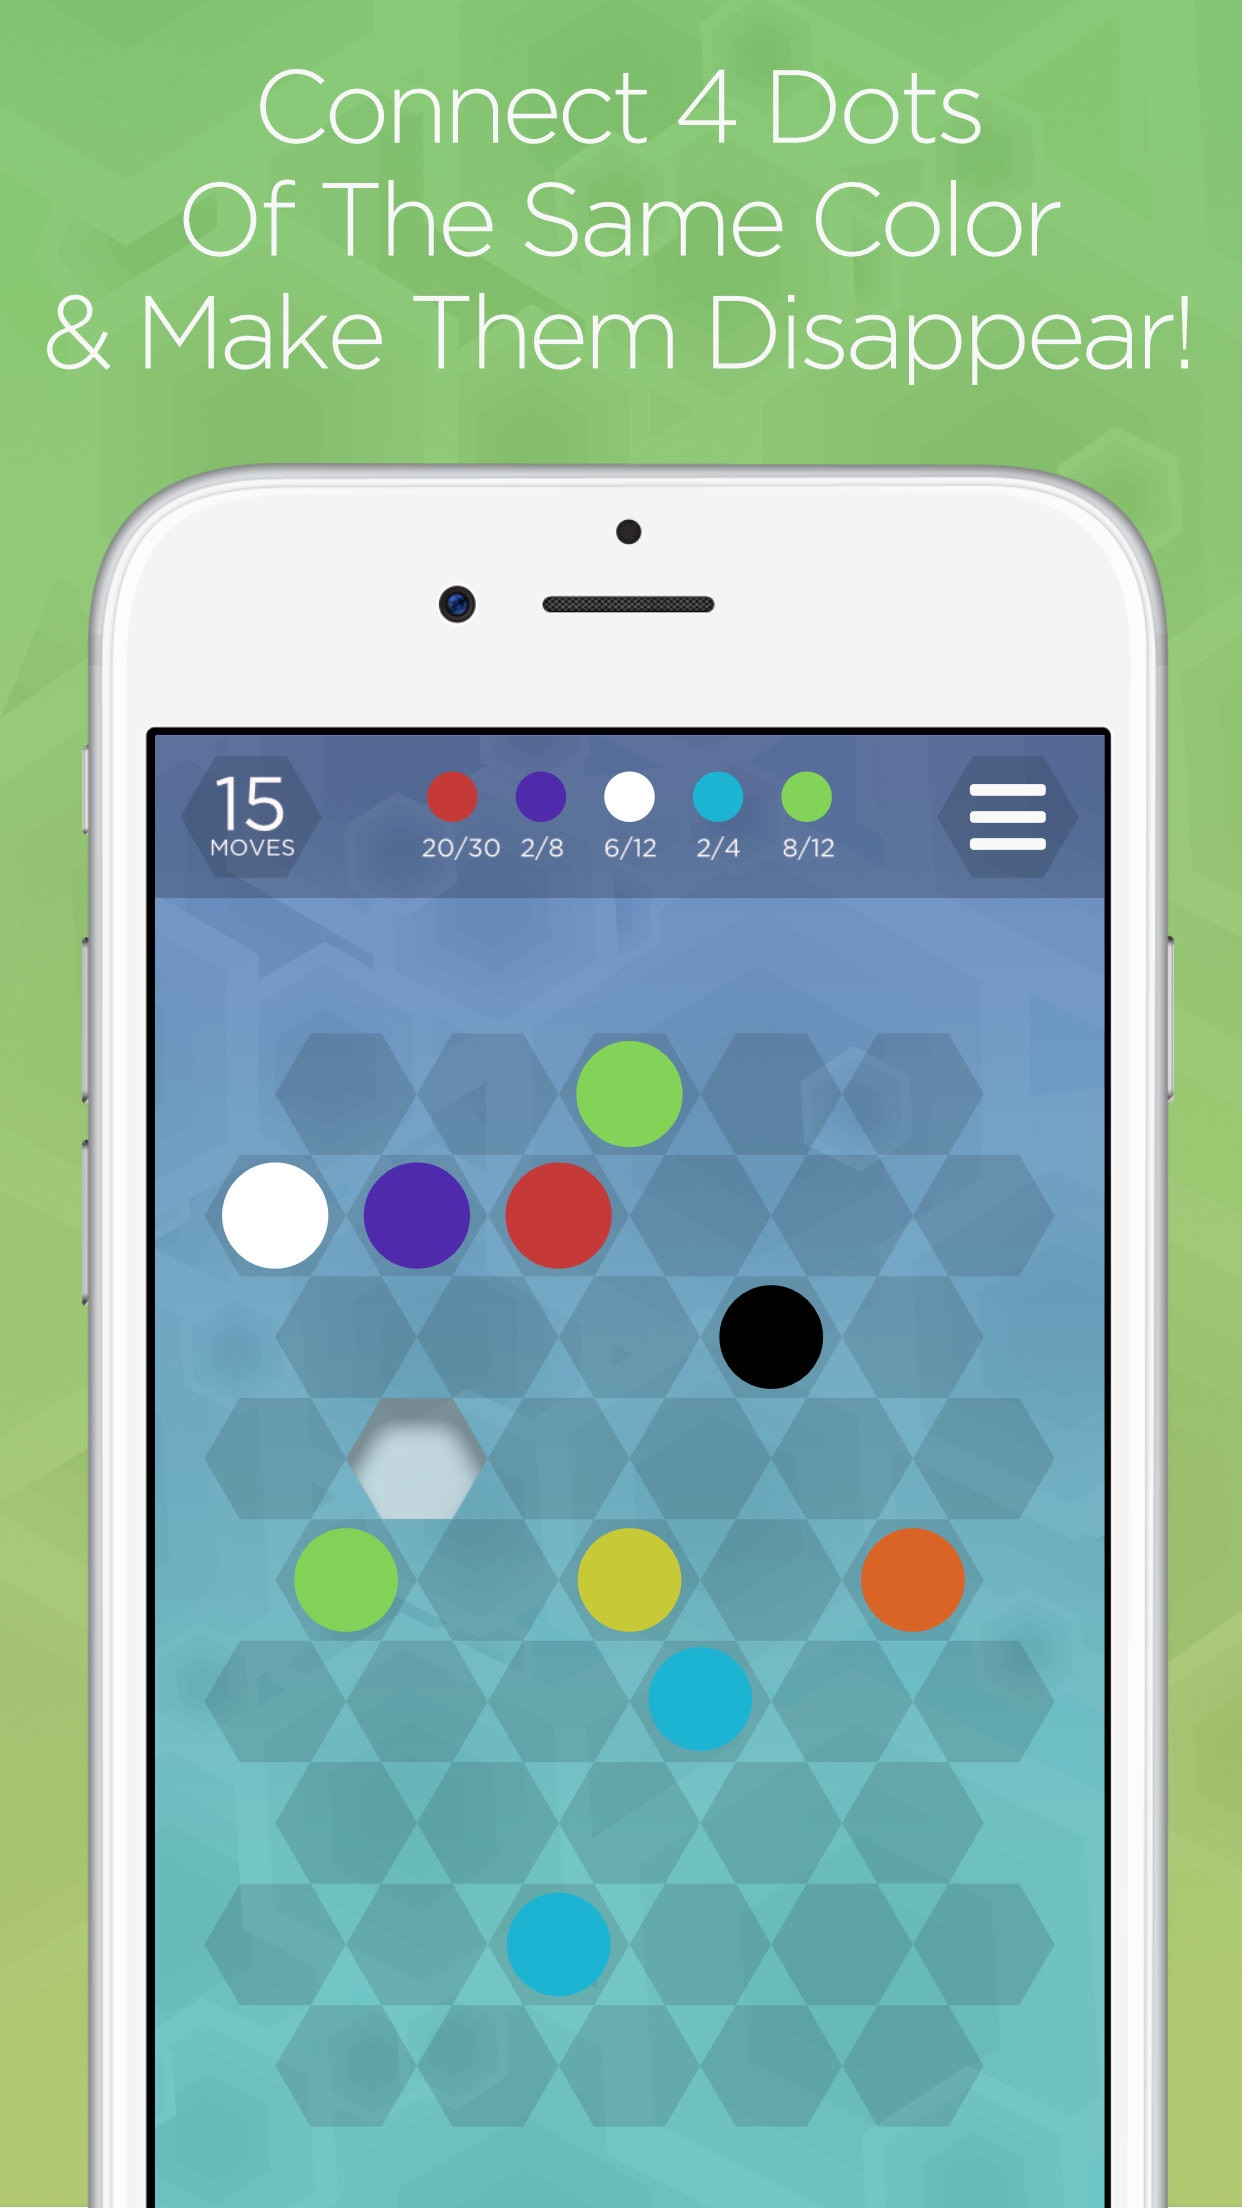 Hexa Dots - Connect Four Dots of the Same Color Screenshot